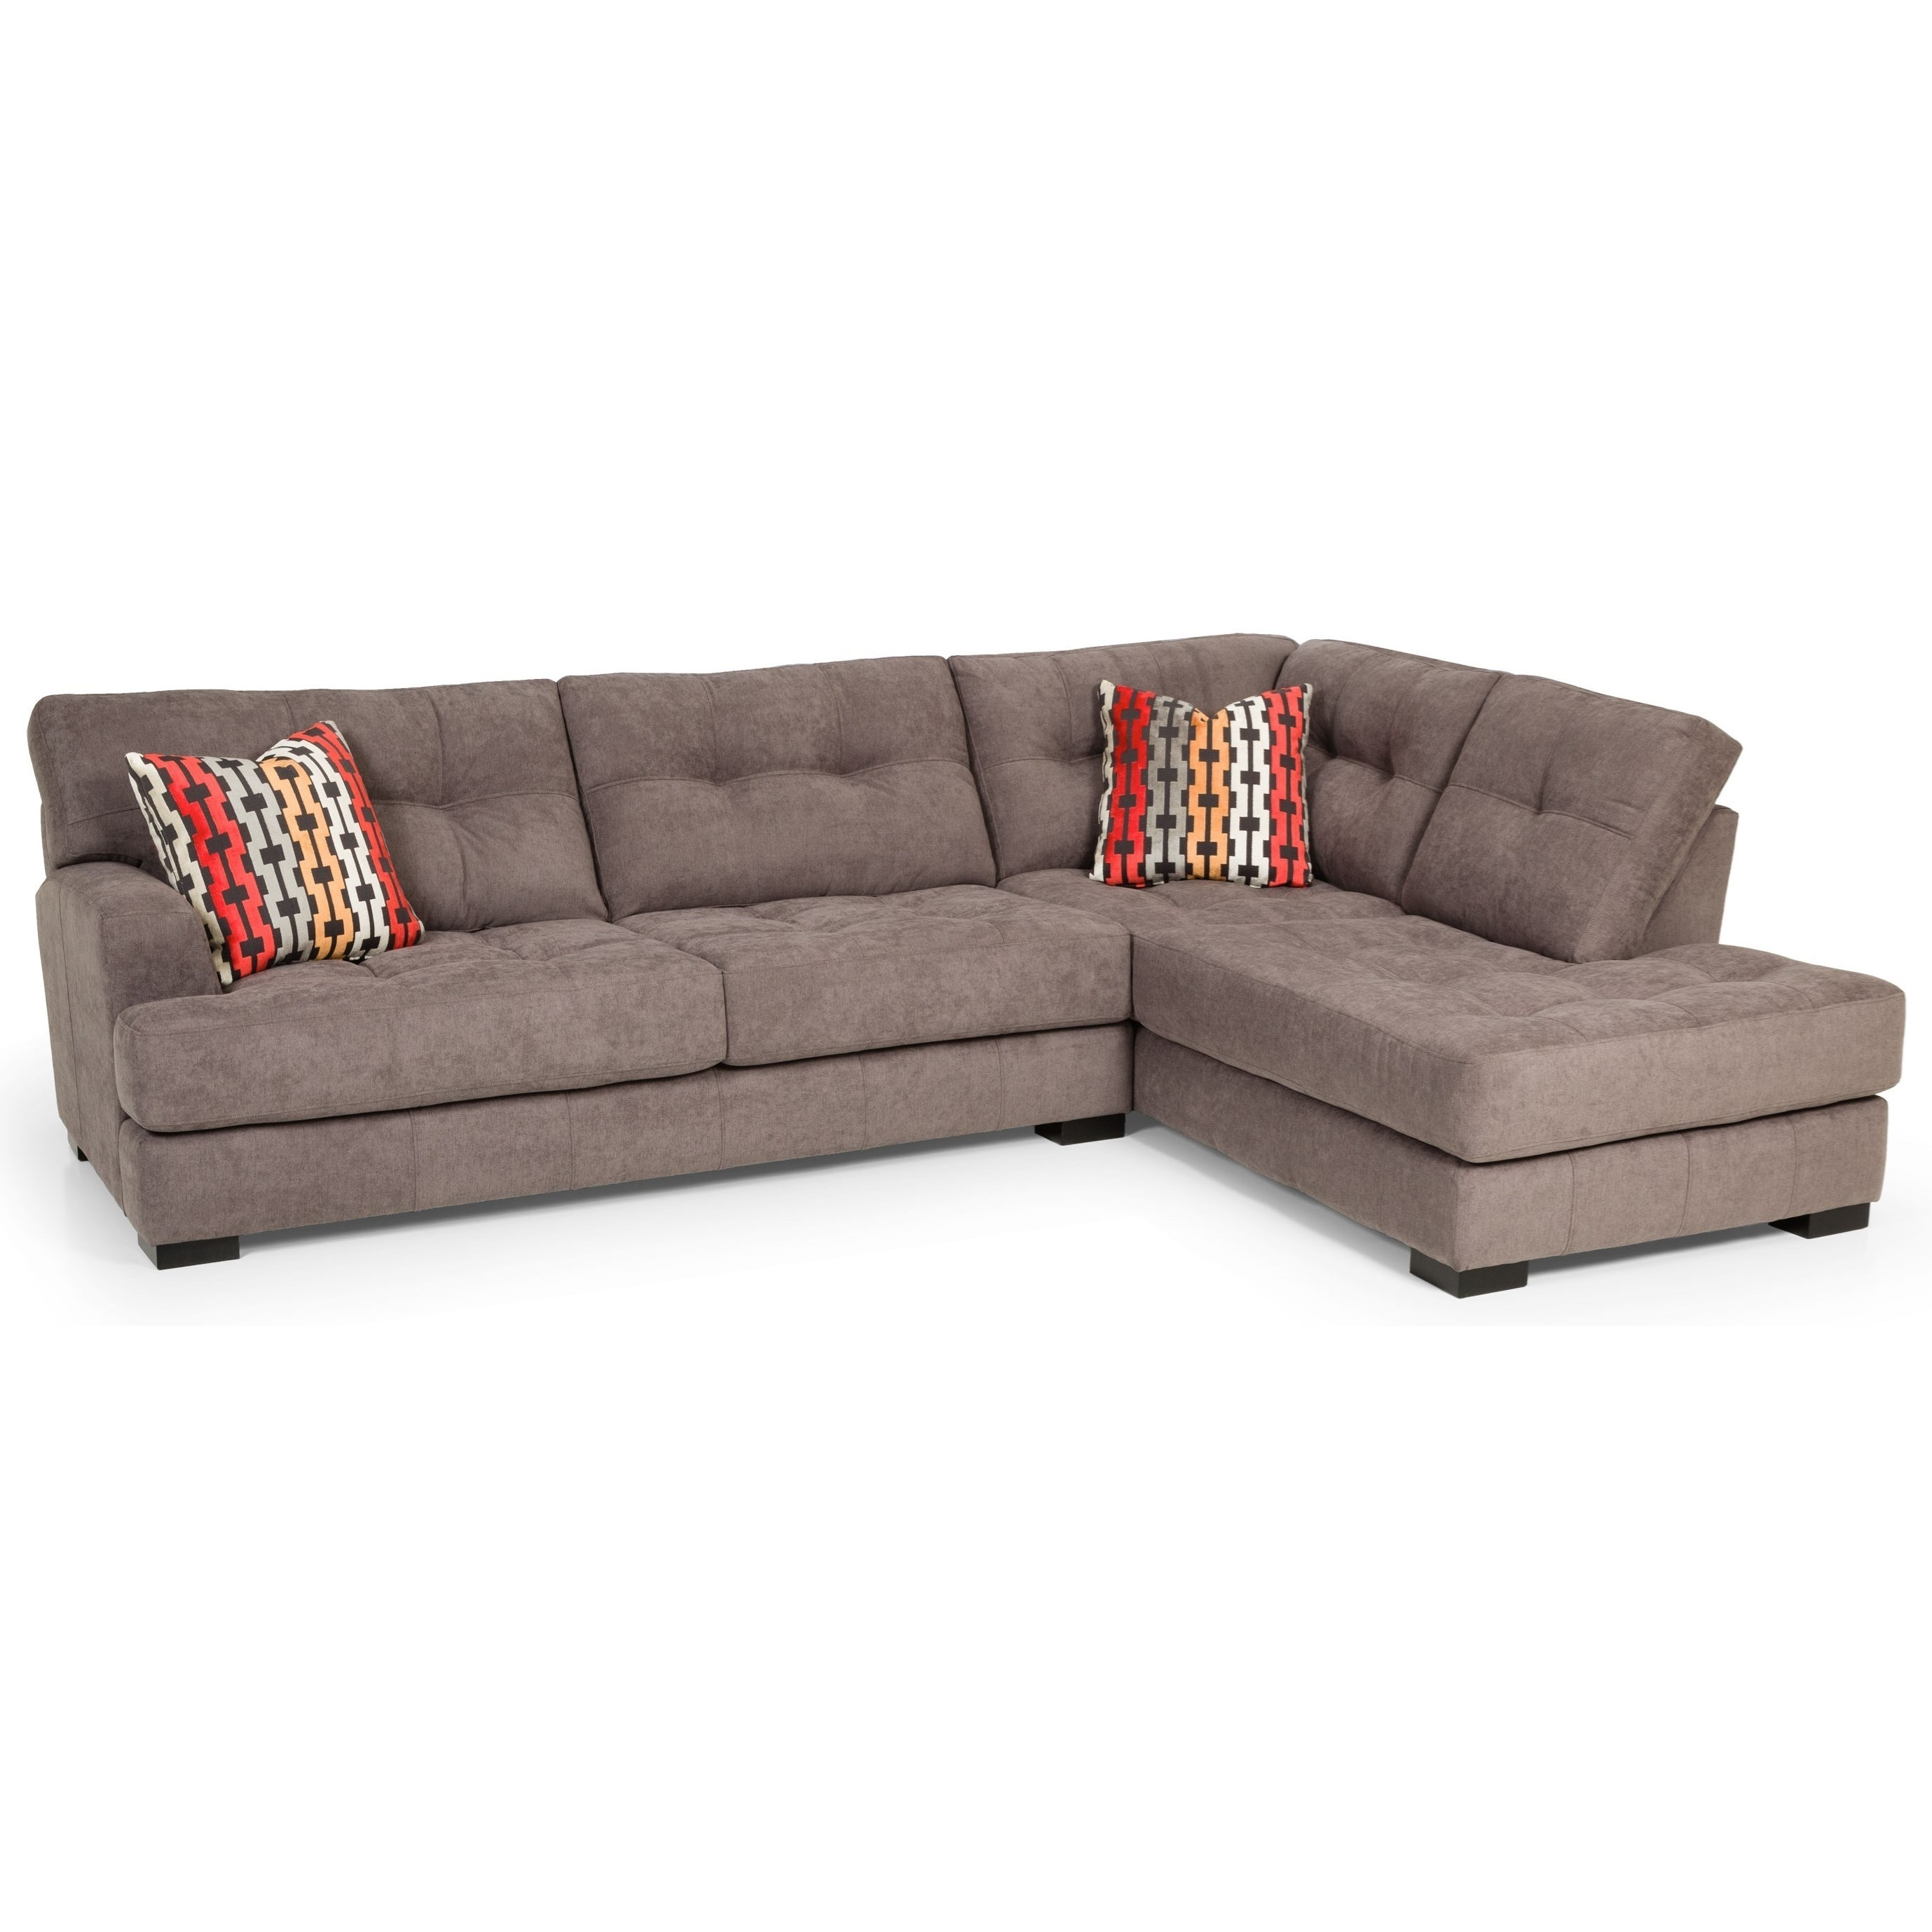 Stanton 308 Casual Two Piece Sectional Sofa | Gallery Furniture Intended For Aurora 2 Piece Sectionals (View 17 of 25)